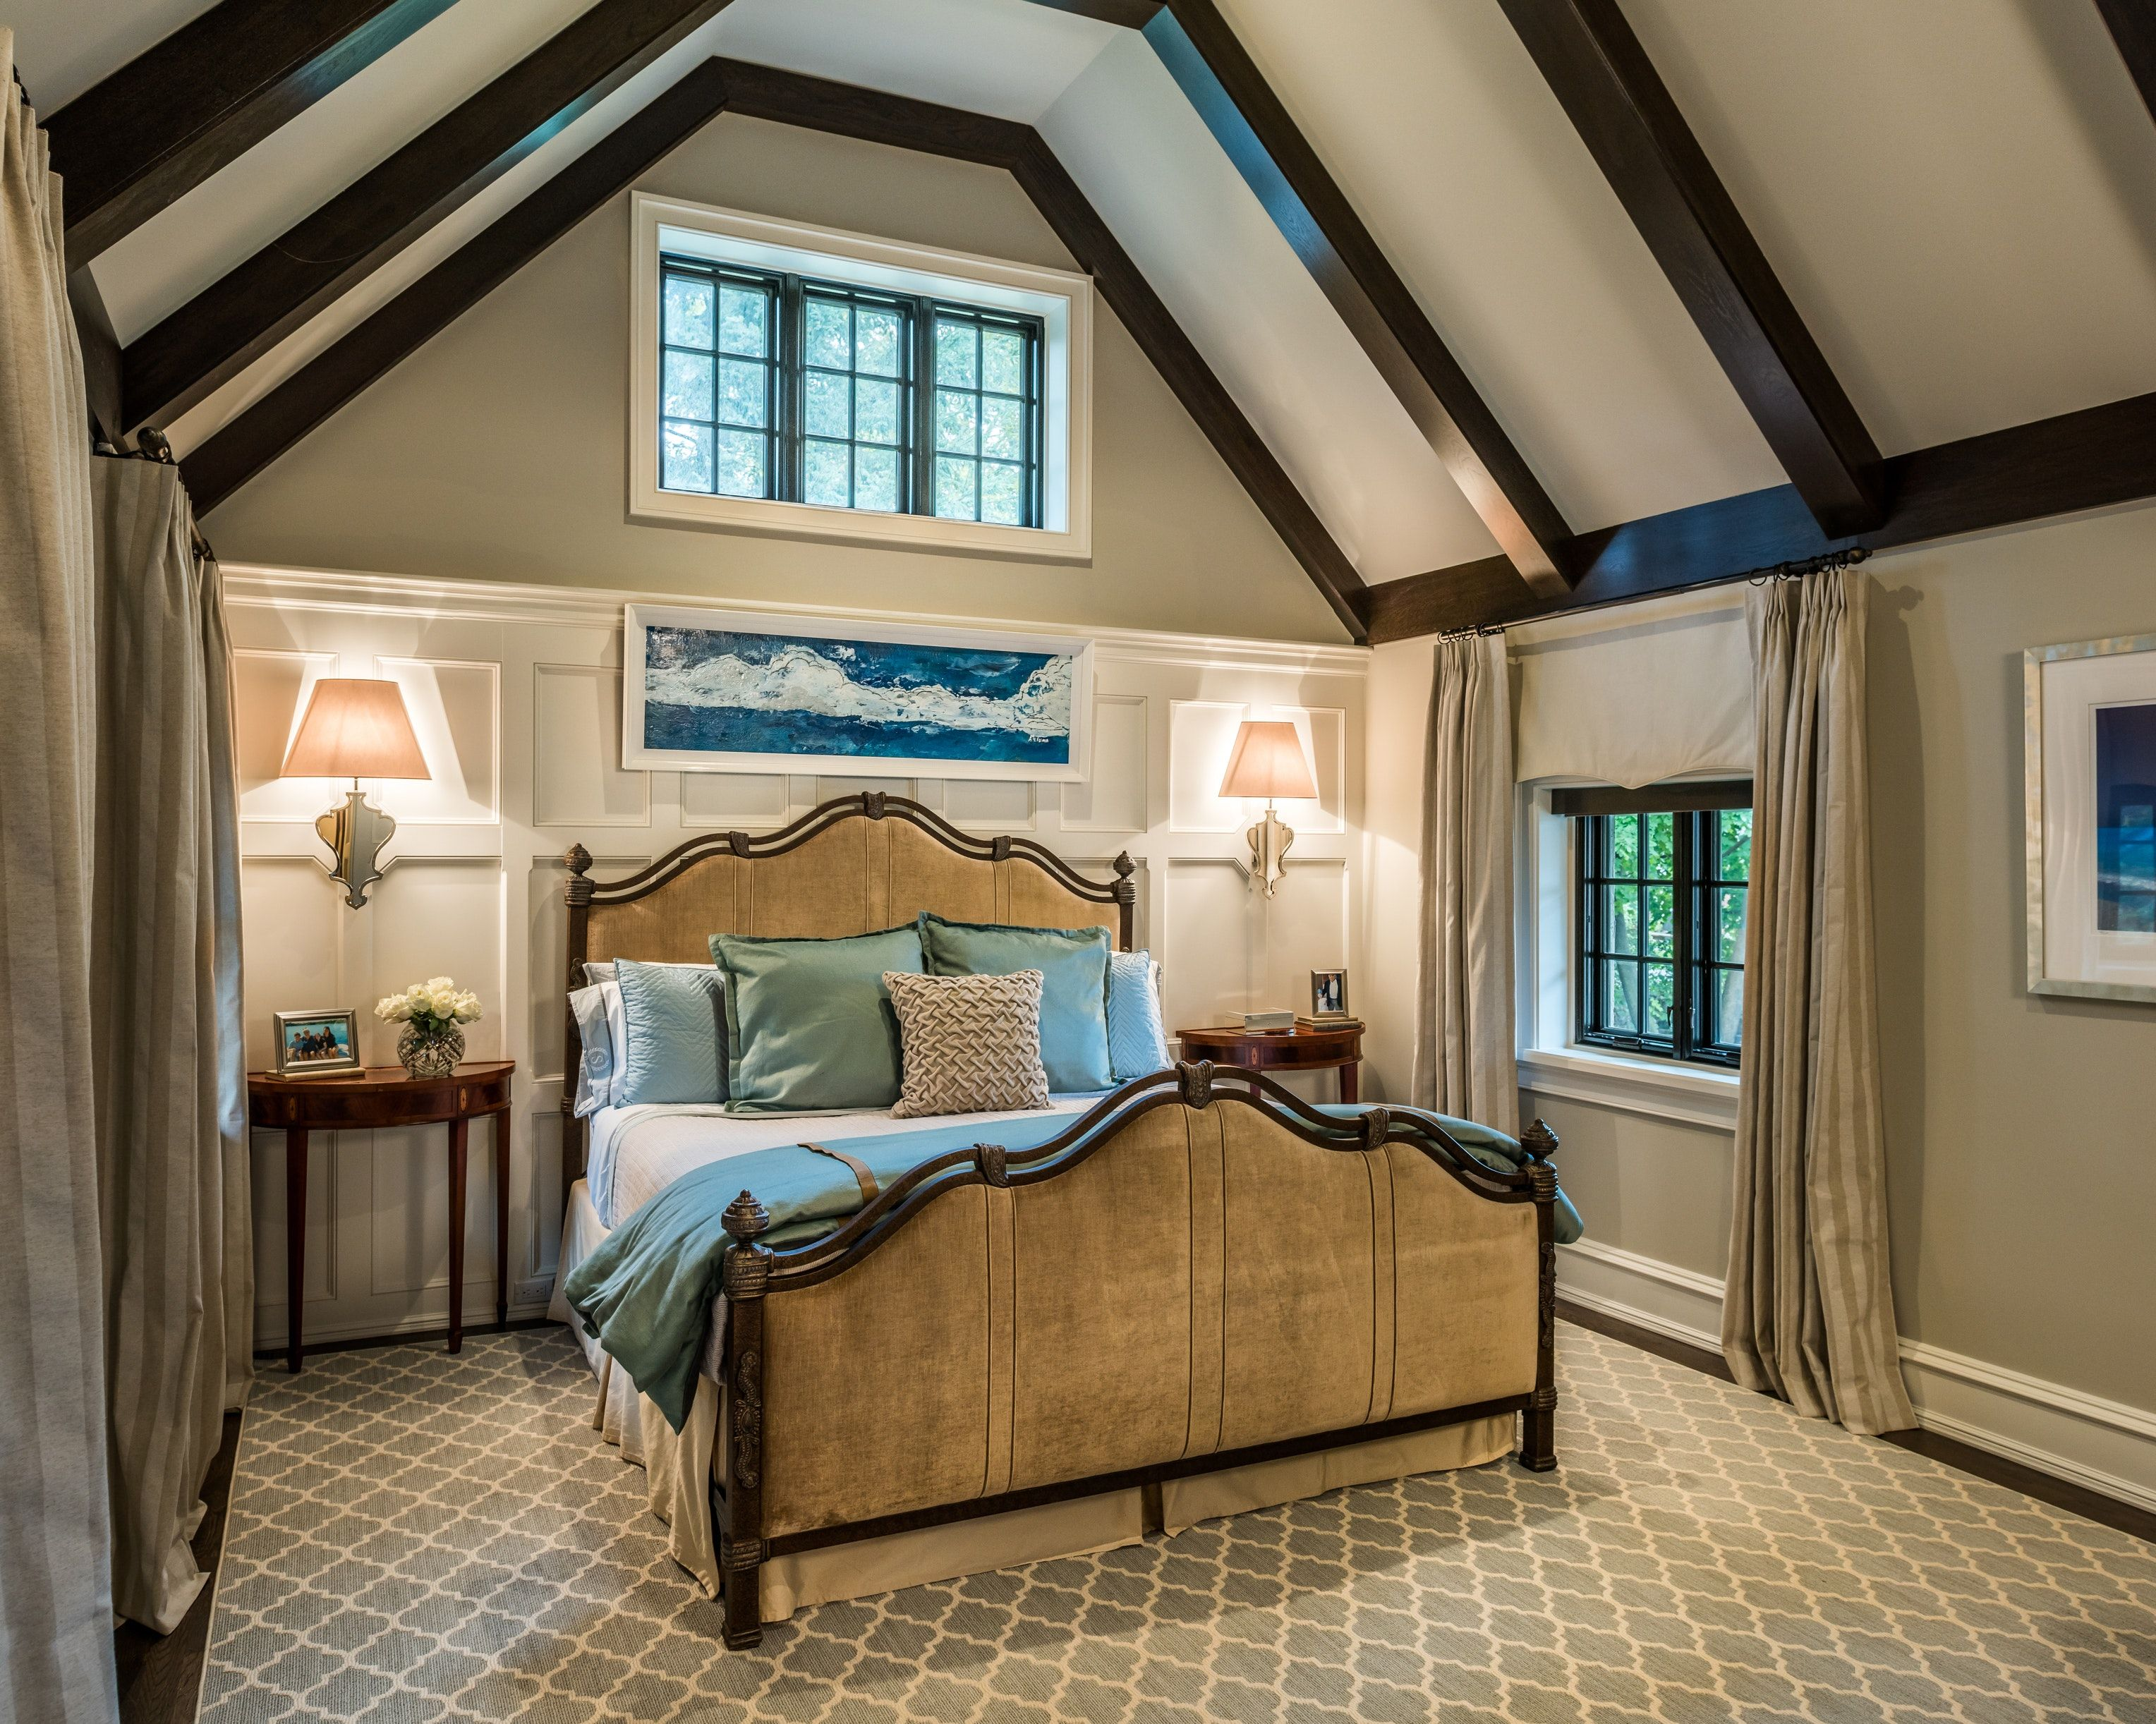 Sconces Used At Bedside In A Tudor Style Master Bedroom With Bed Wall Paneling Master Bedroom Interior Tudor Style Master Bedroom